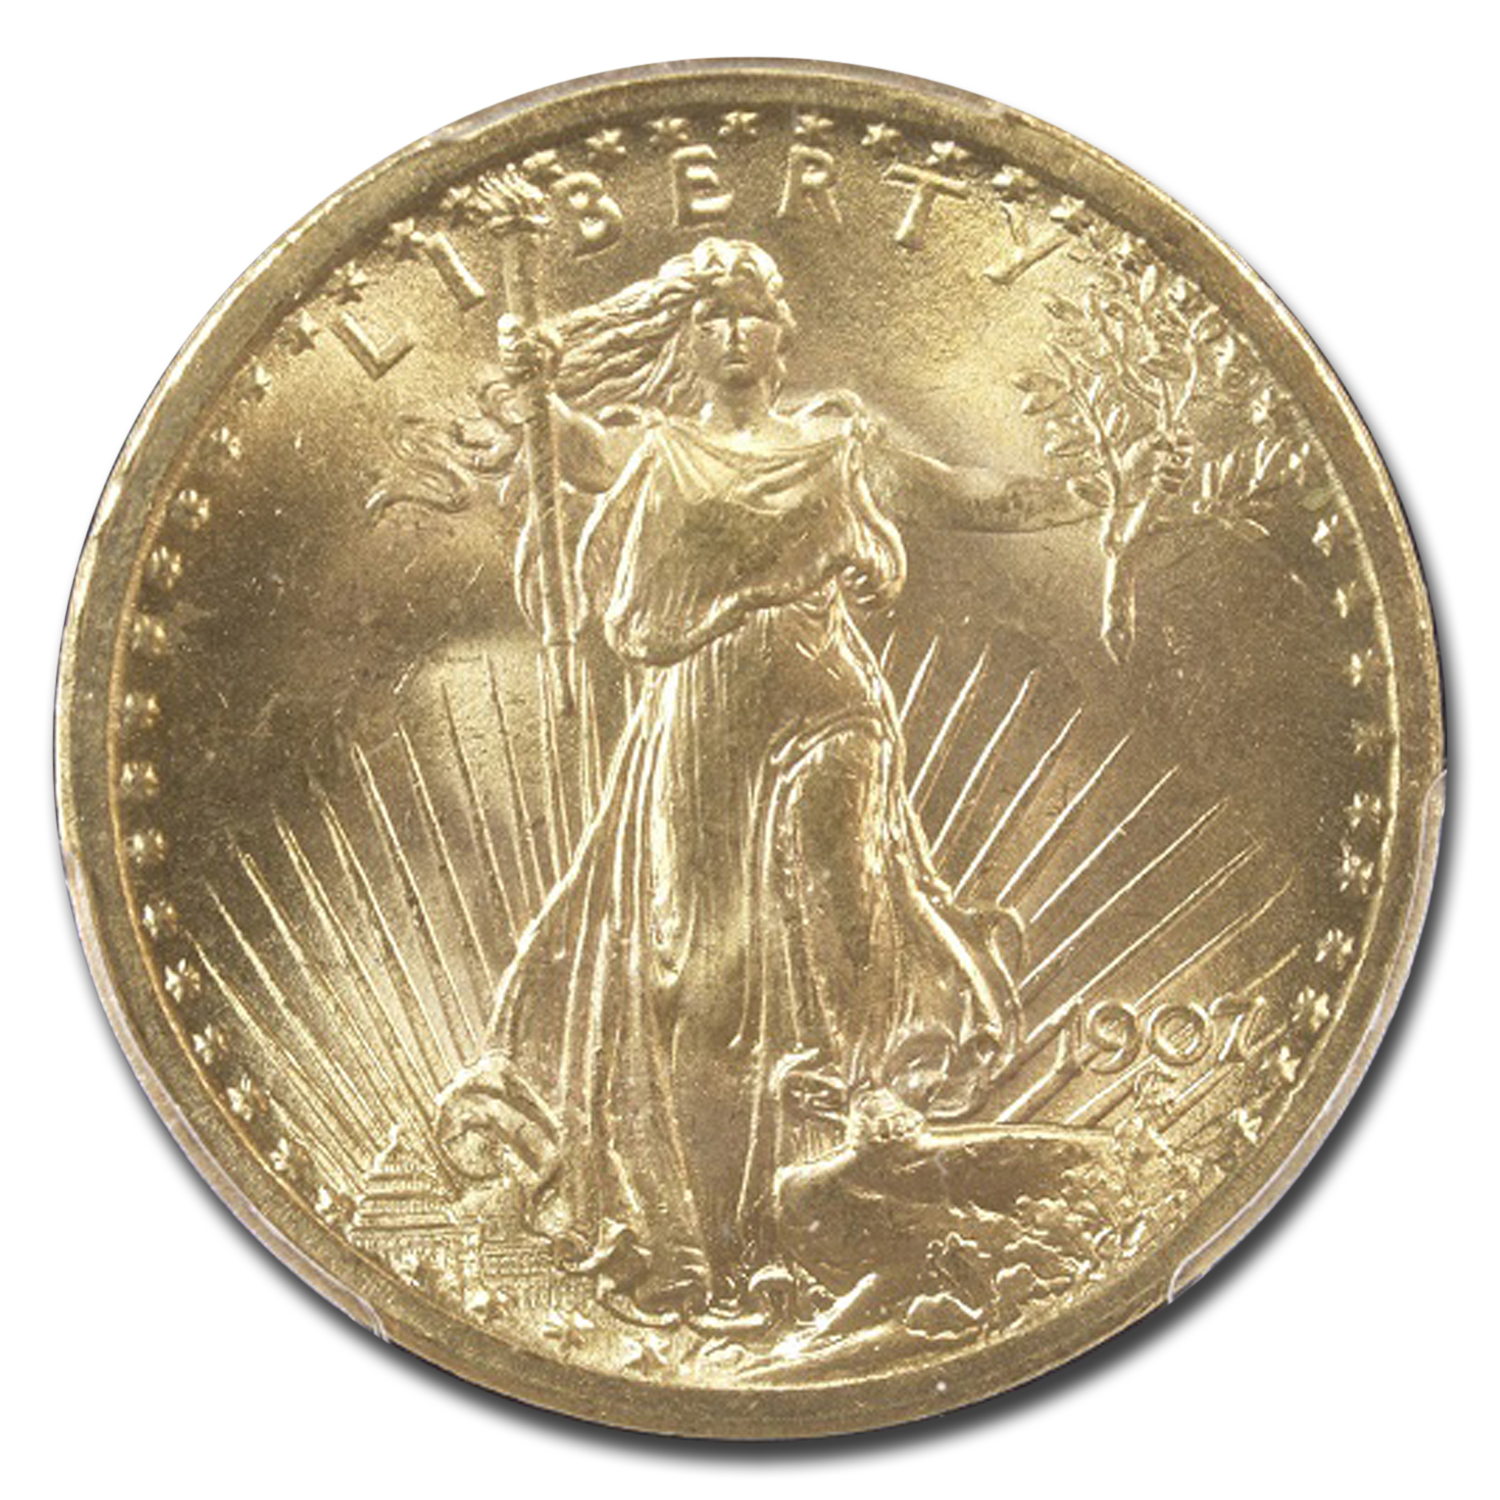 1907 $20 St. Gaudens Gold Double Eagle - MS-66 PCGS